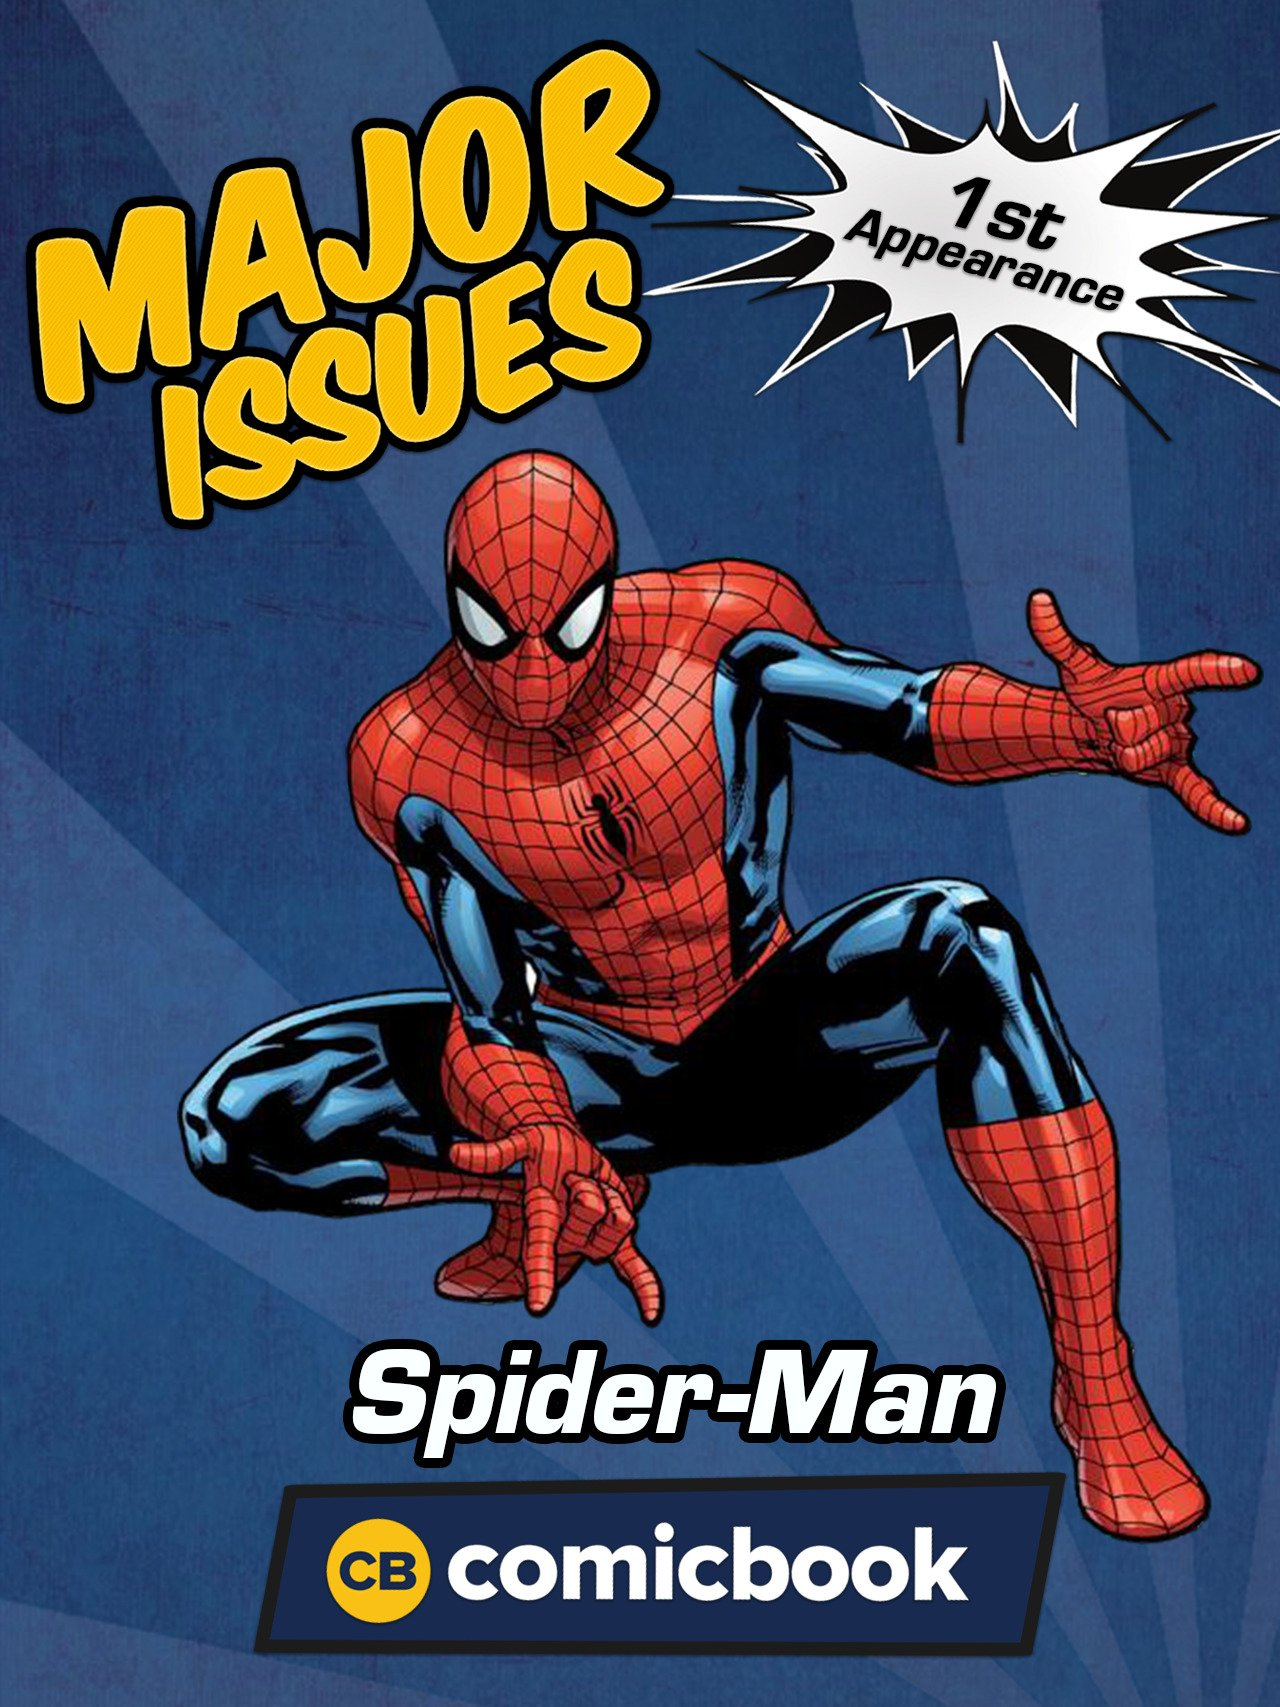 Watch 'Spider-Man's First Appearance- Major Issues' on ...